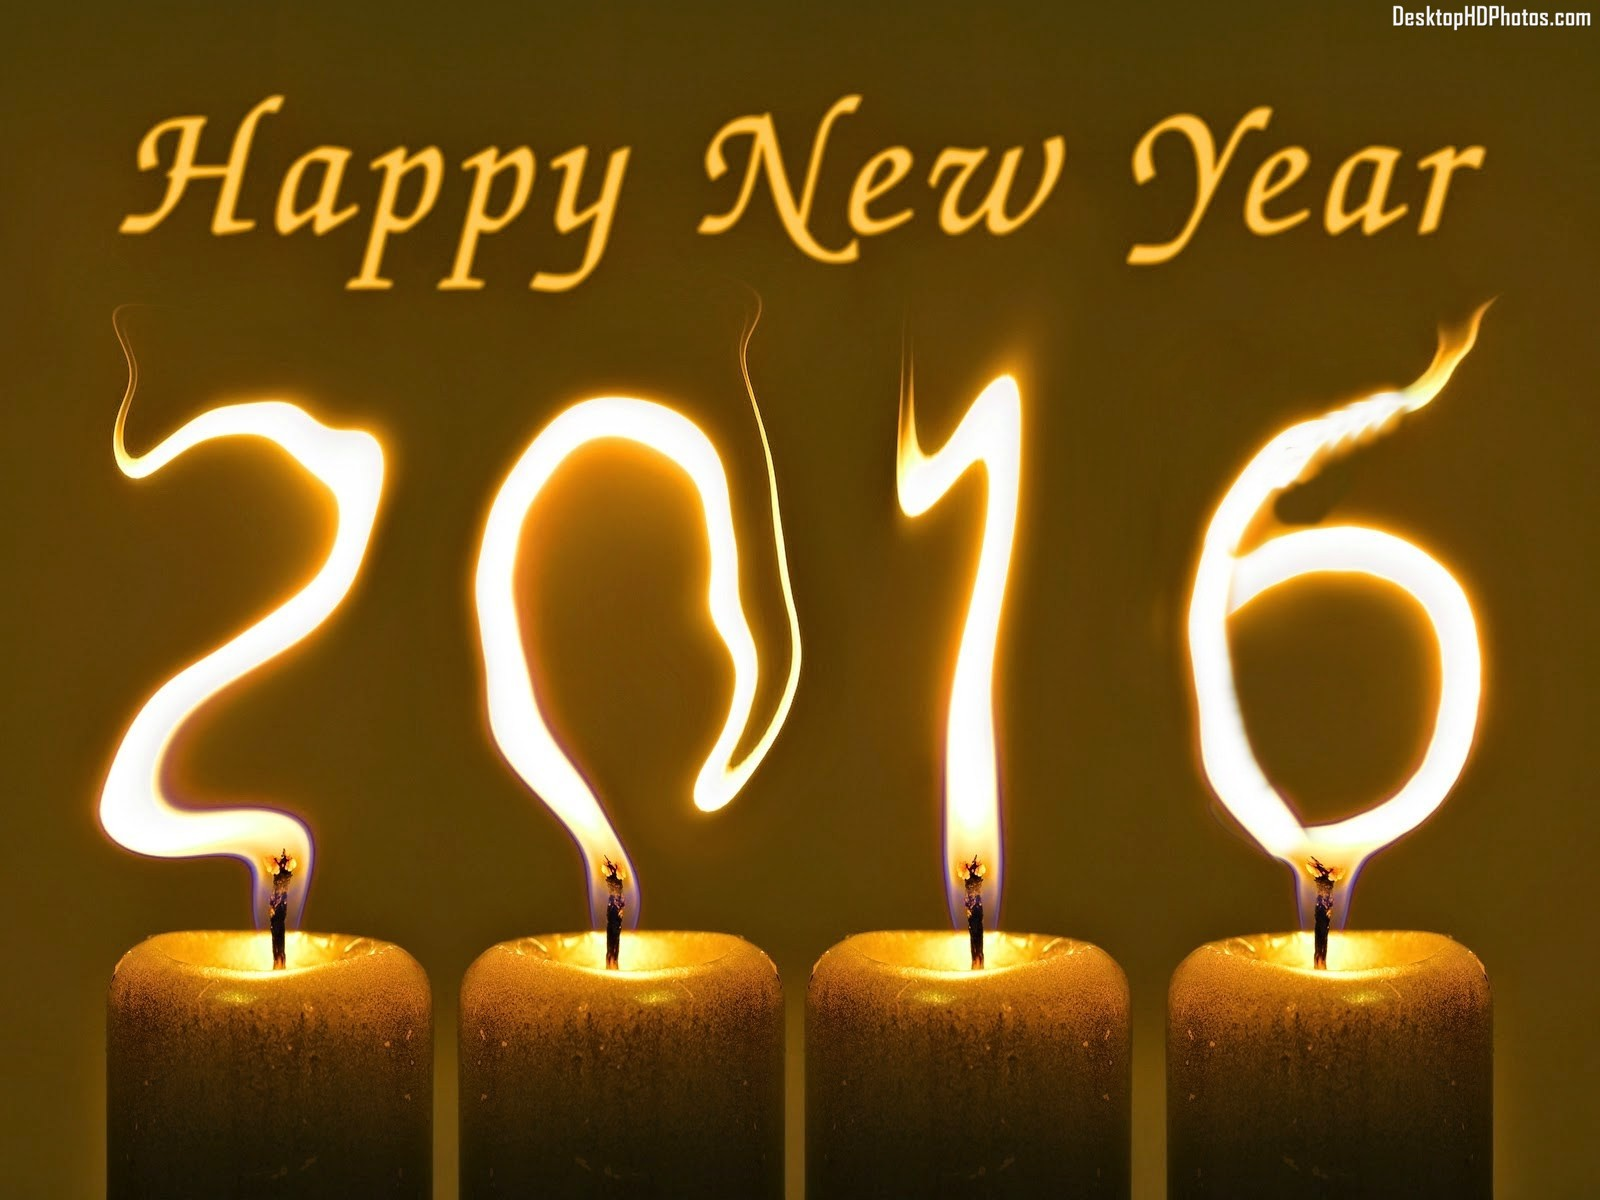 New Year Wishes 2016 Happy New Year 2016 Whatsapp Quizpuzzles